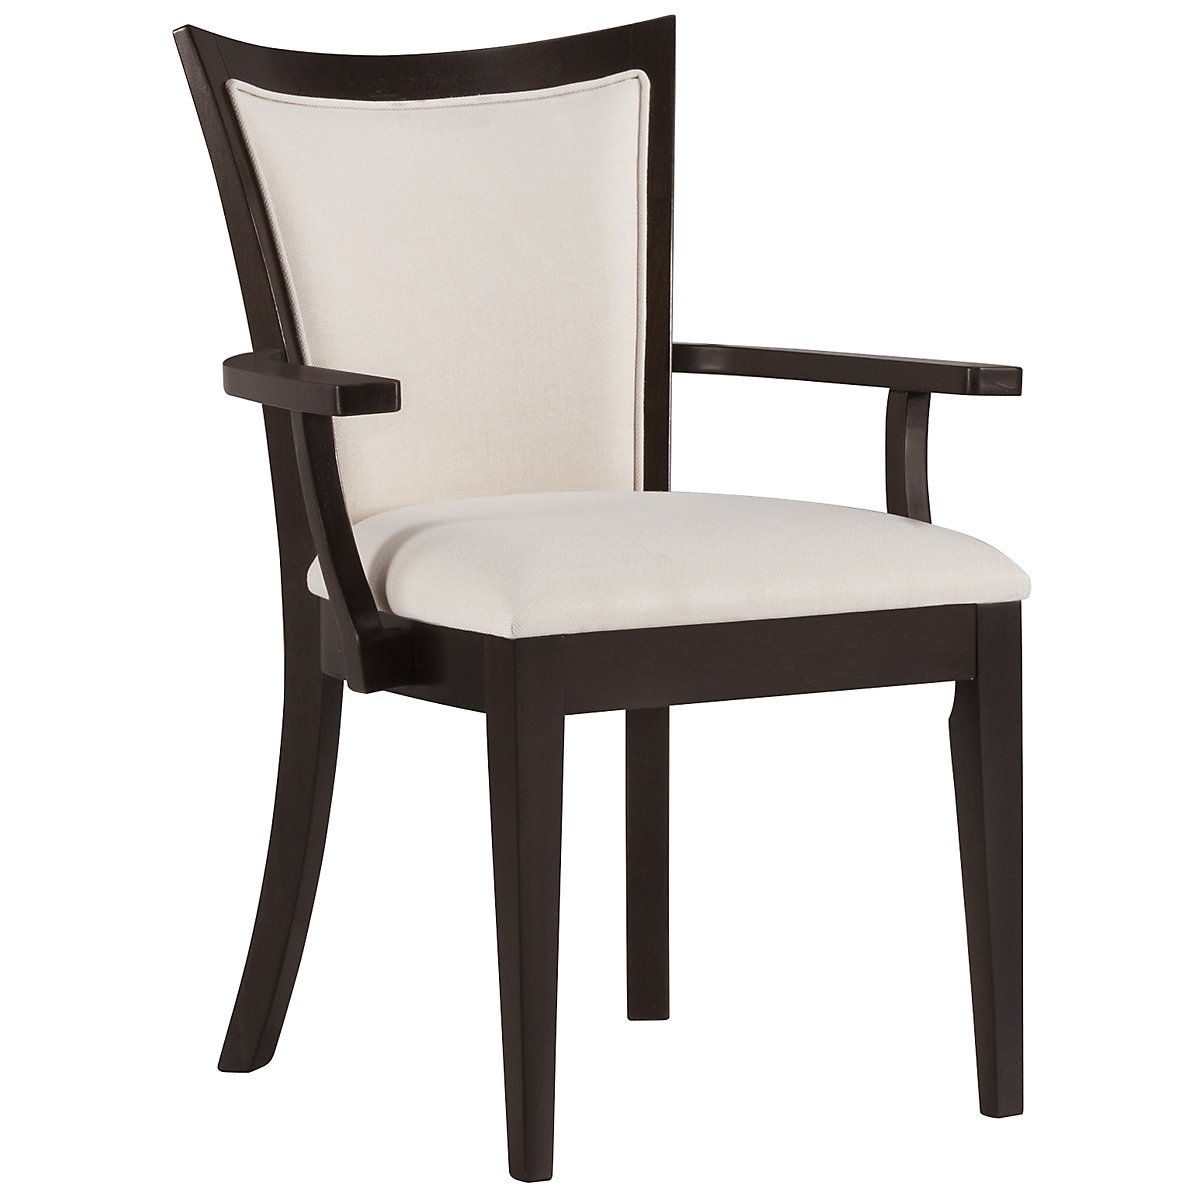 Sanibel Dark Tone Upholstered Arm Chair